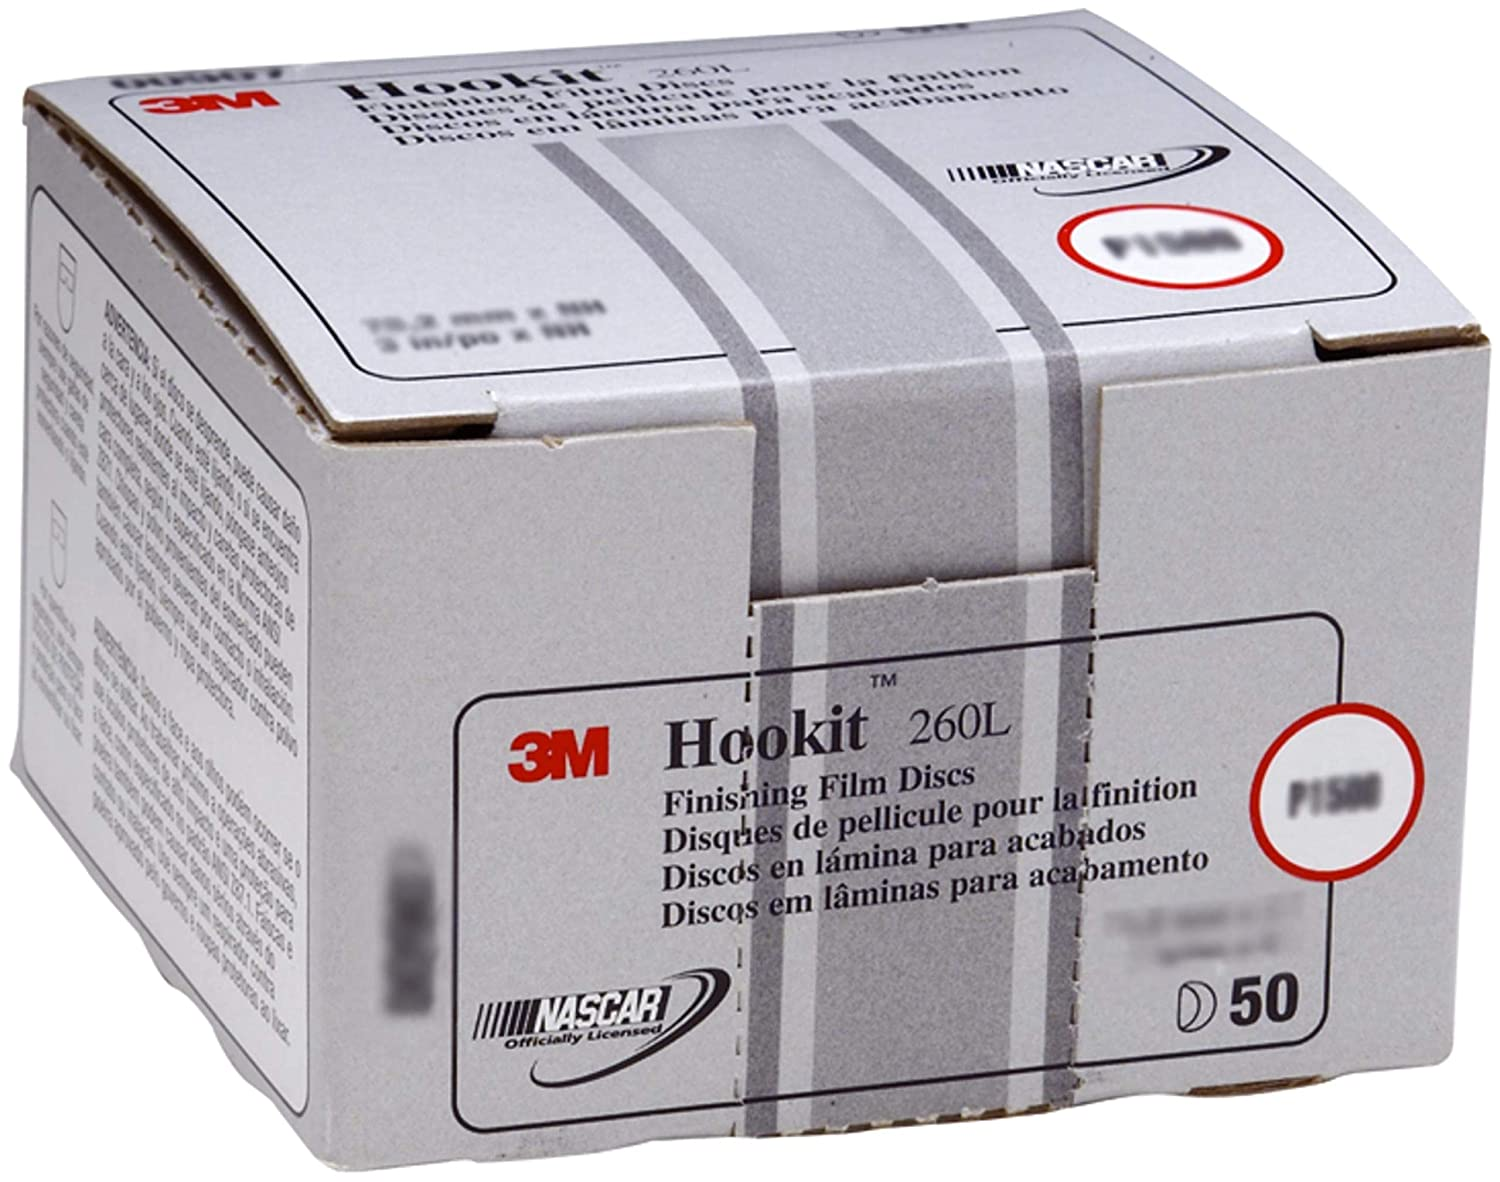 3M Hookit Finishing Film Abrasive Disc 260L, 00910, 3 in, P800, 50 discs per carton